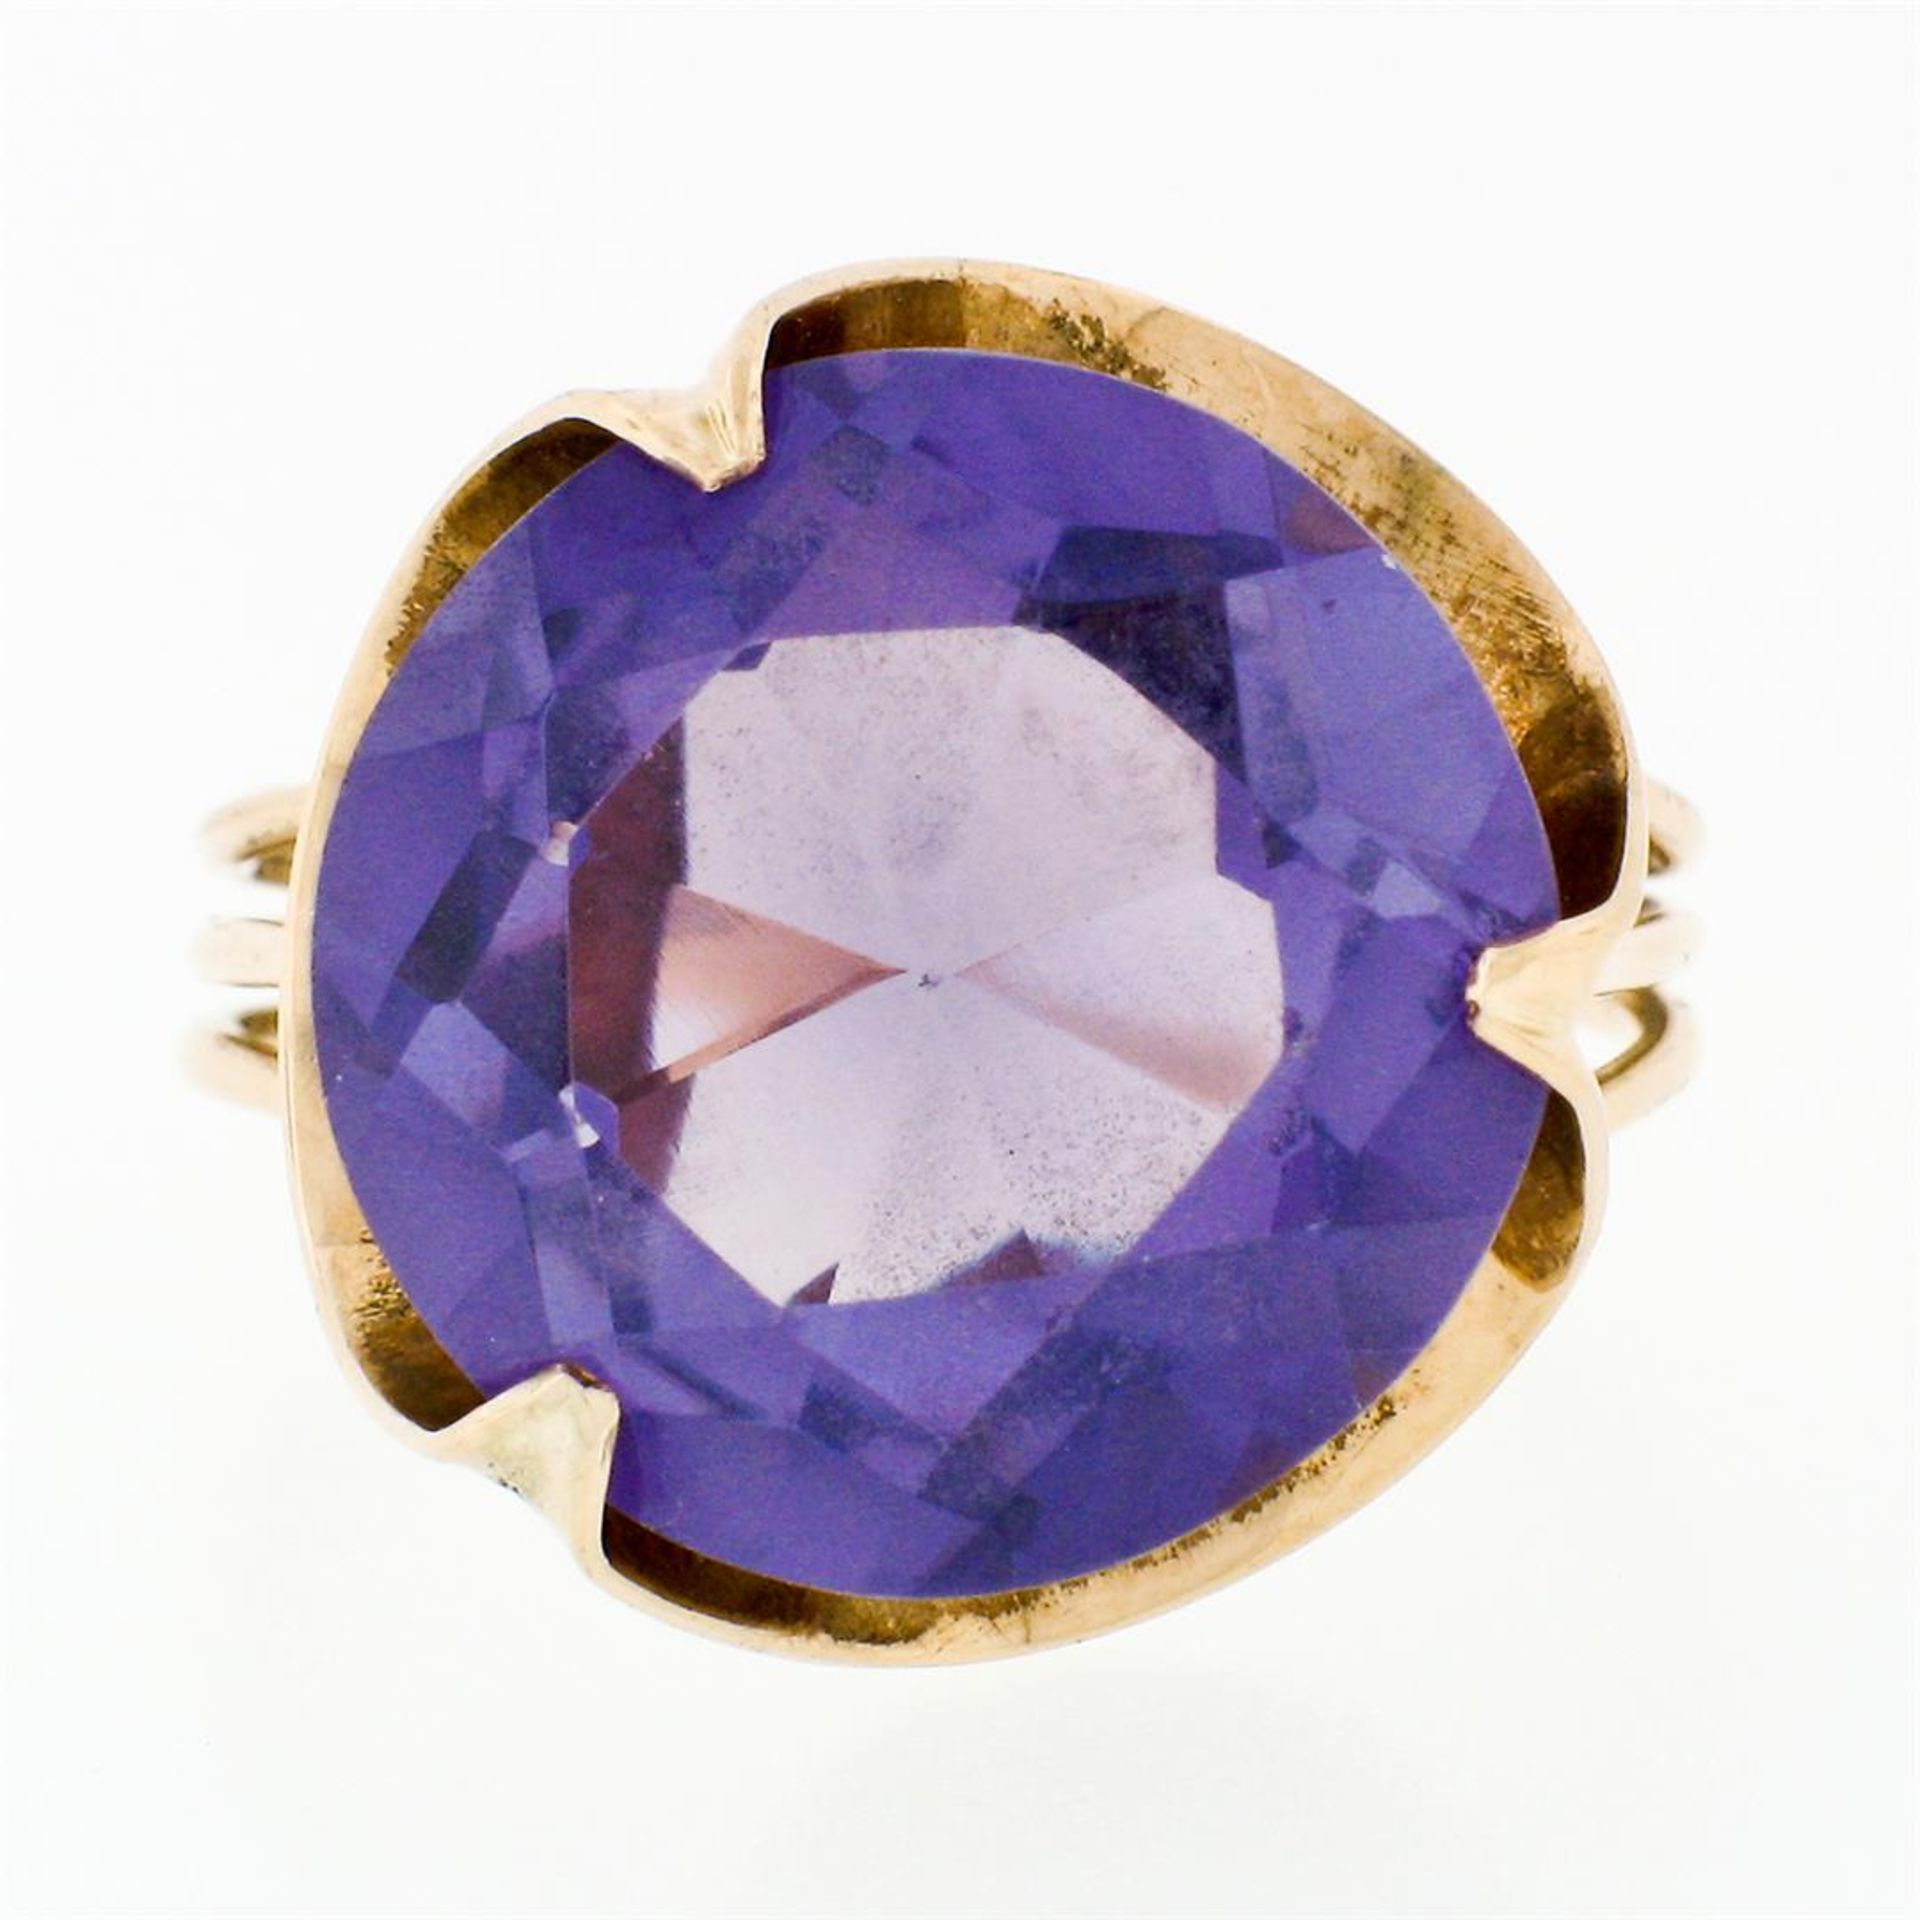 Retro Vintage Handmade 14k Rose Gold 13.7mm Synthetic Alexandrite Solitaire Ring - Image 4 of 8